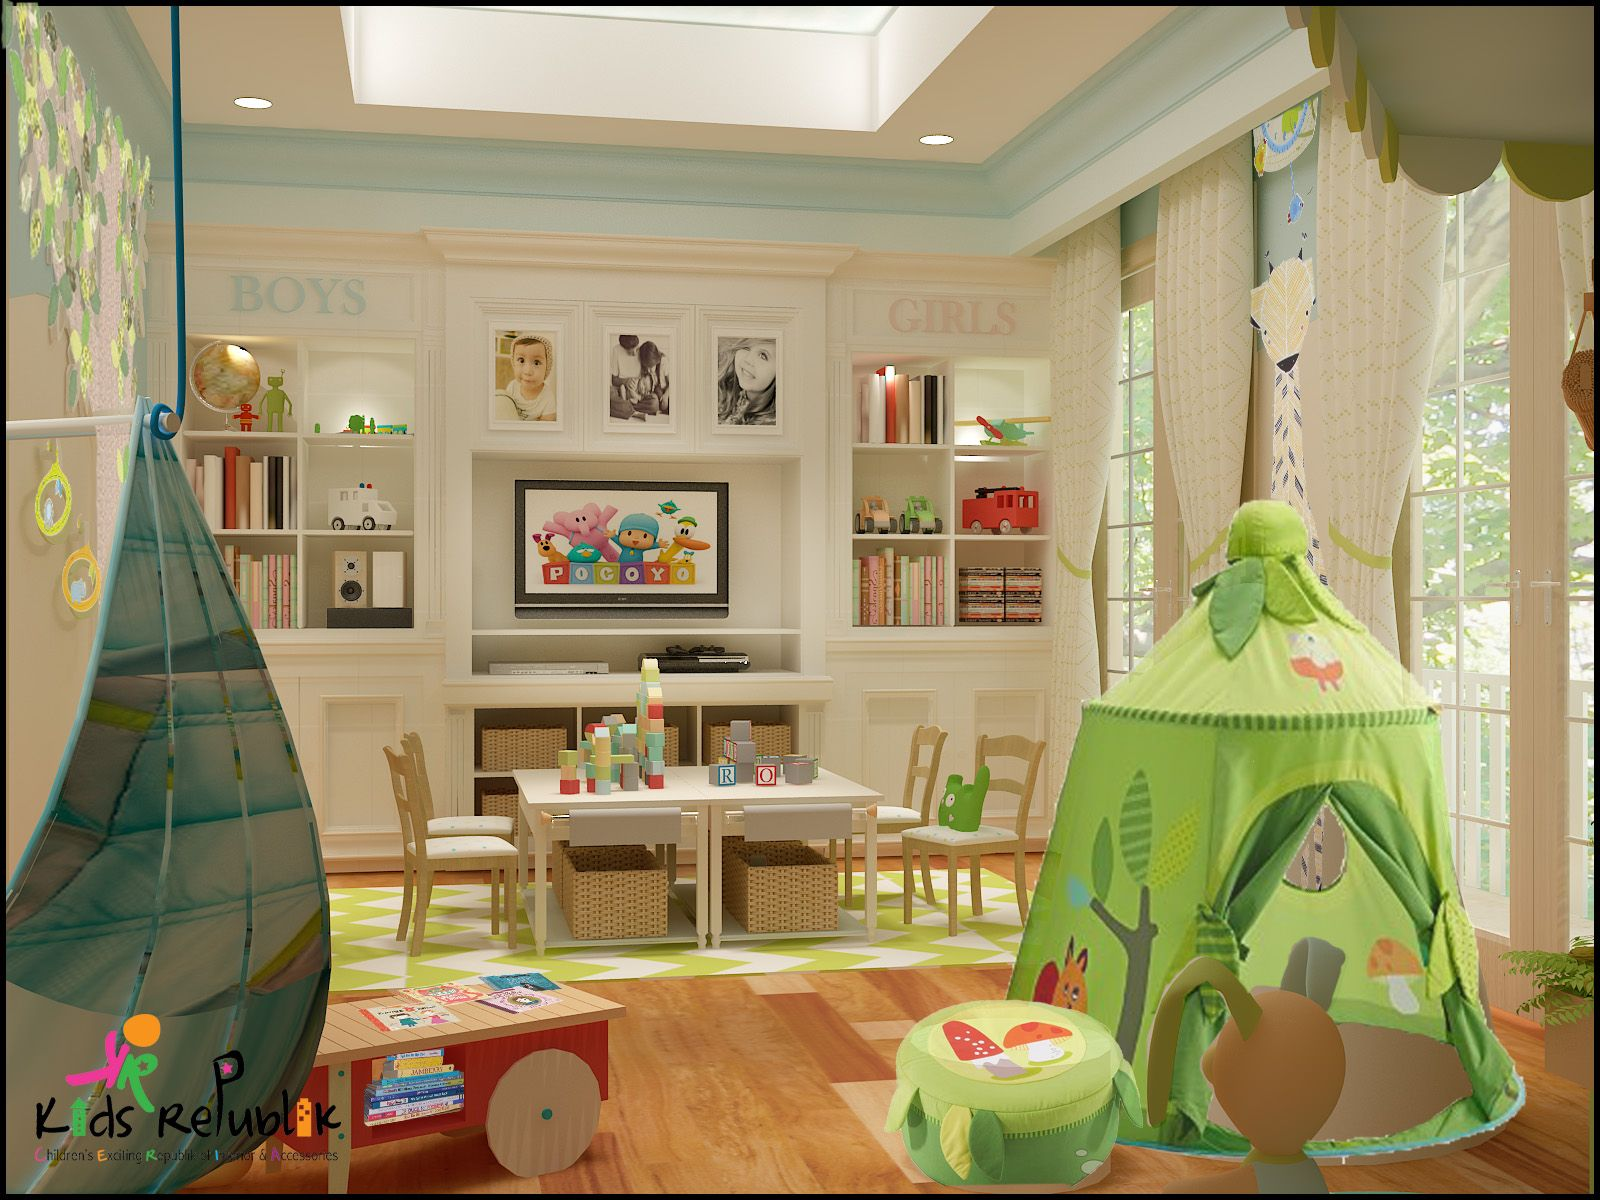 Kids Playrooms Interior For A Kids Playroom Located At Jl Permata Hijau Jakarta